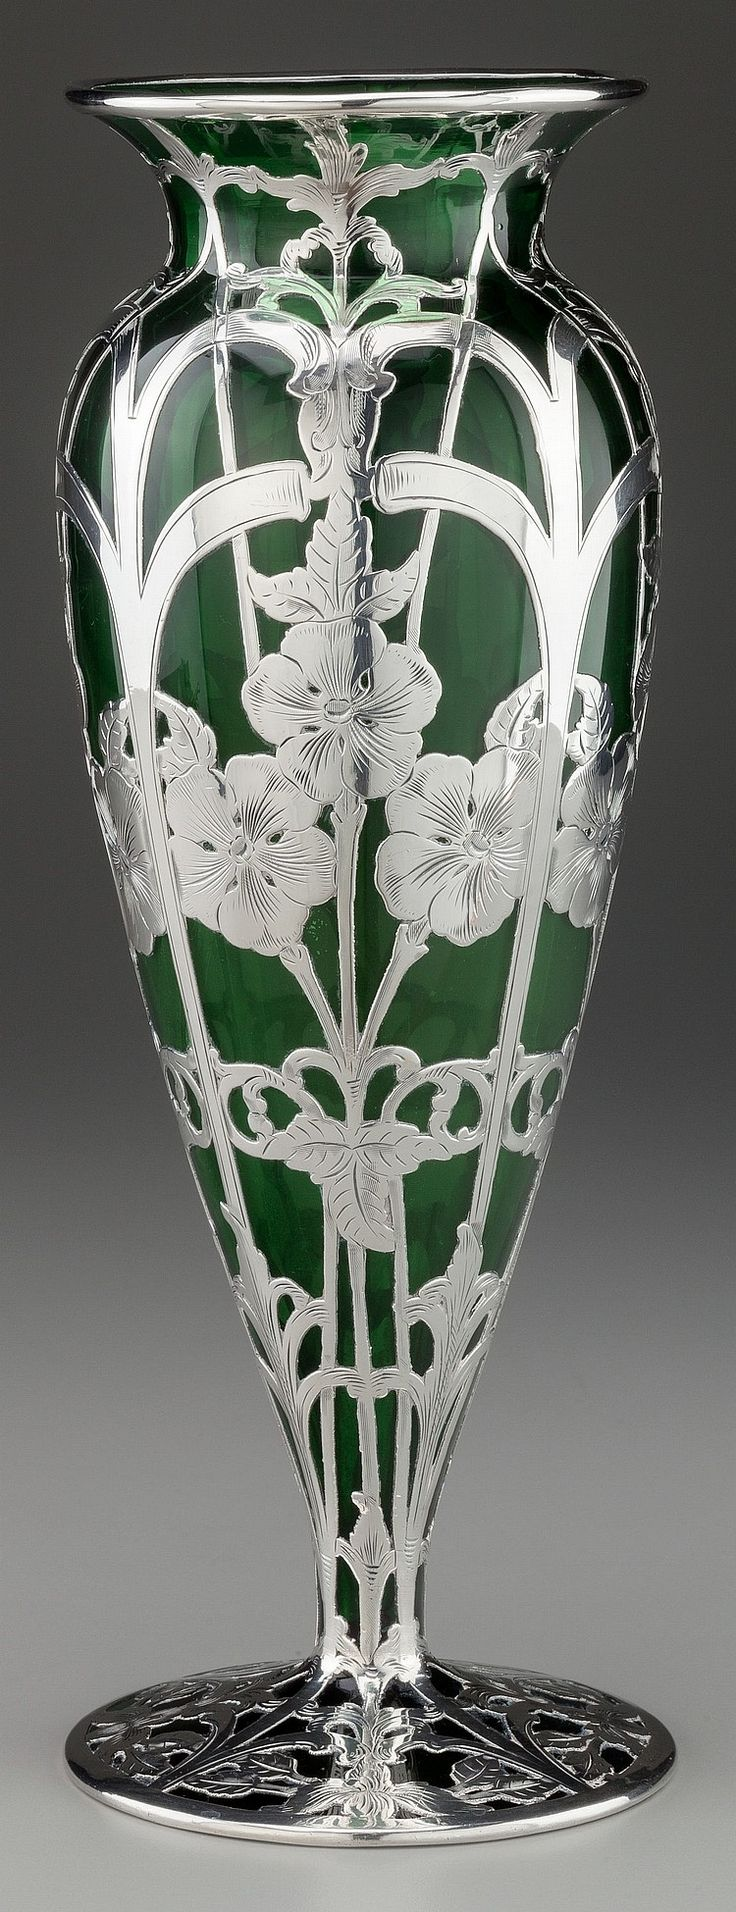 551 best antiquevintage glass vase images on pinterest glass lvin silver overlay glass vase providence rhode island circa 1900 the bulbous green glass vase with a flared lip rim and raised on a circular spreading reviewsmspy